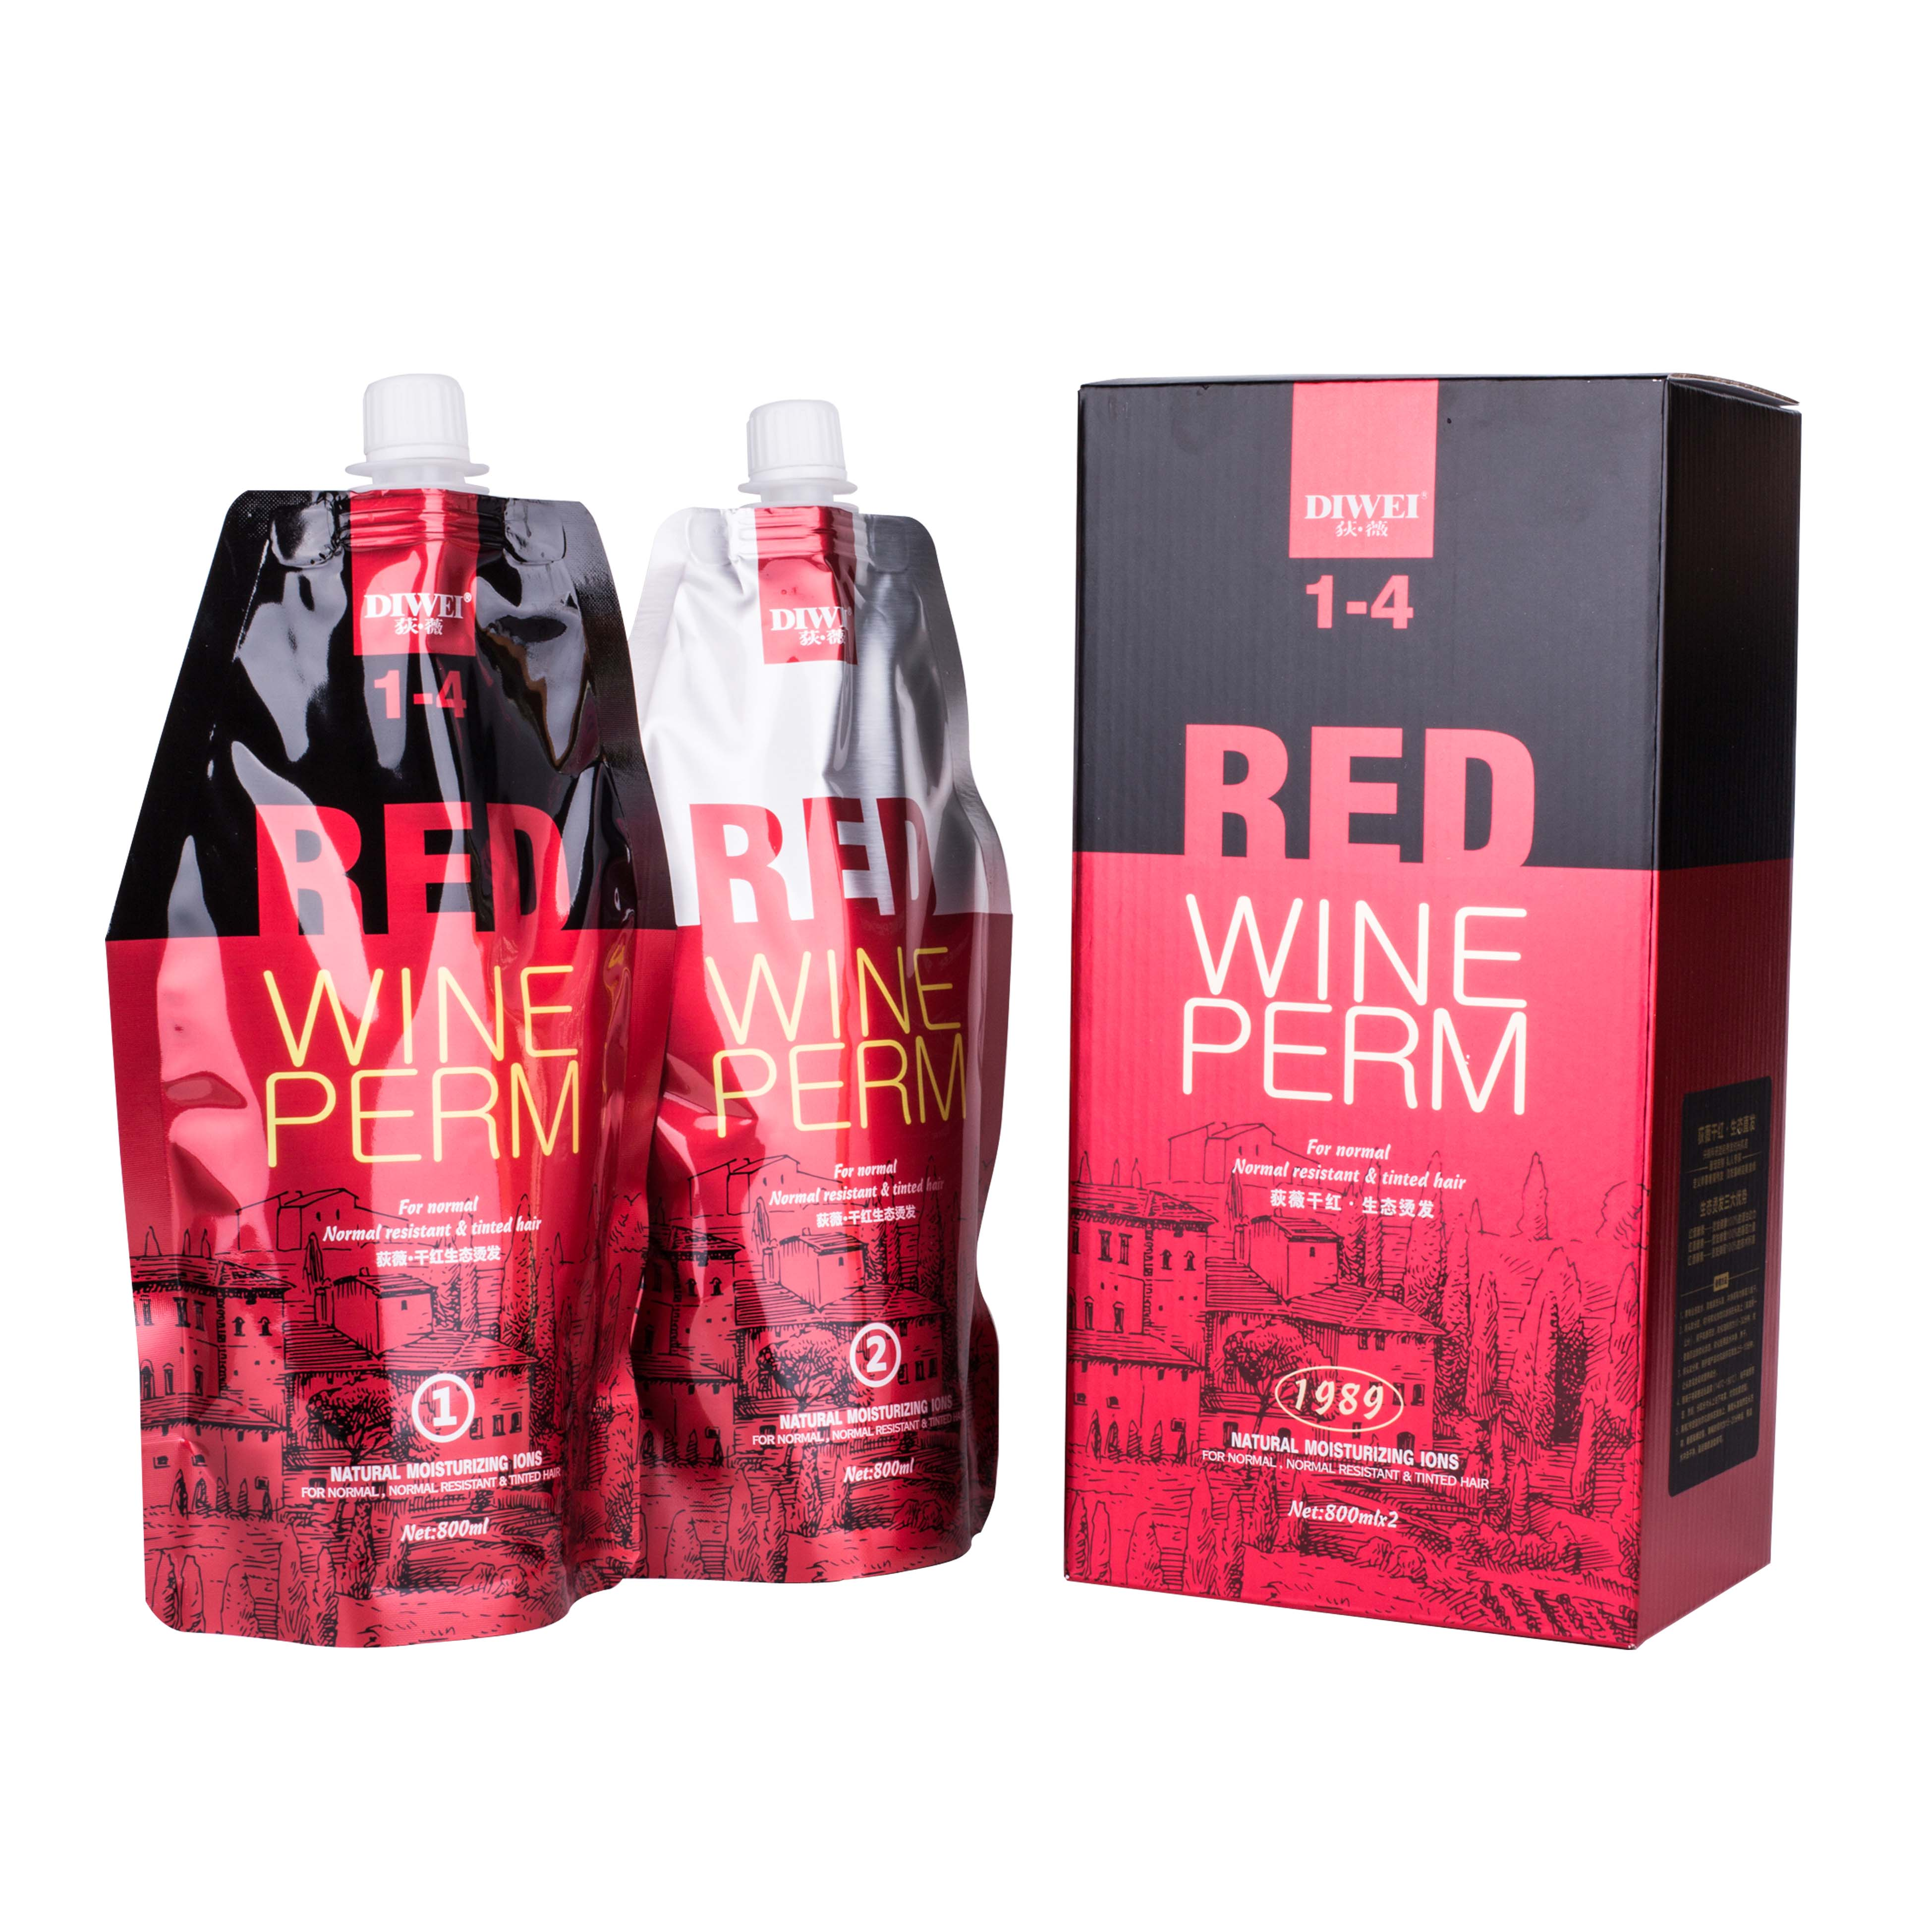 Hot Tub Red Wine Review Honest Wine Reviews Red Blend Wine Wine Reviews Red Wine